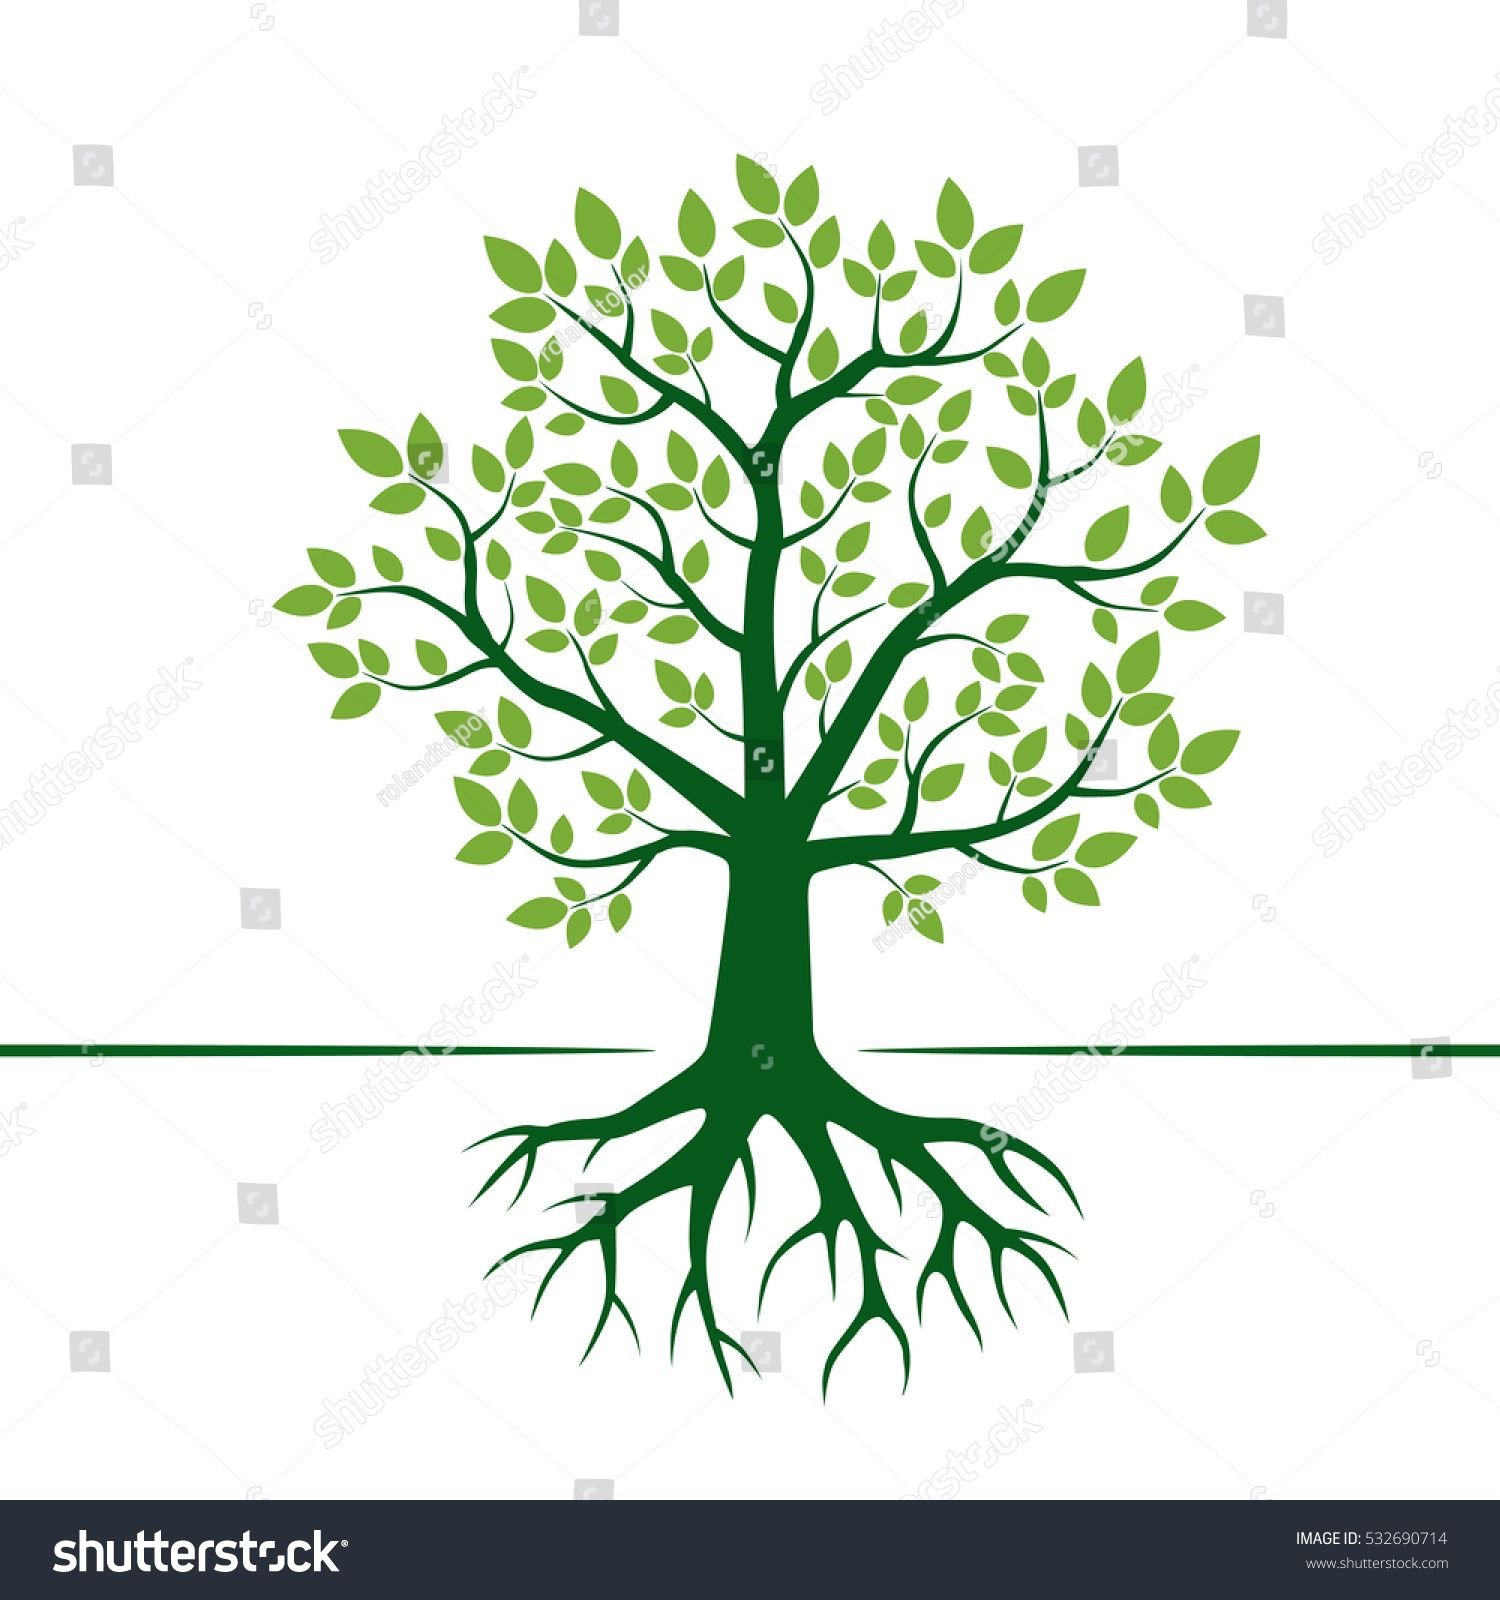 stock-vector-green-vector-tree-and-roots-vector-illustration ...